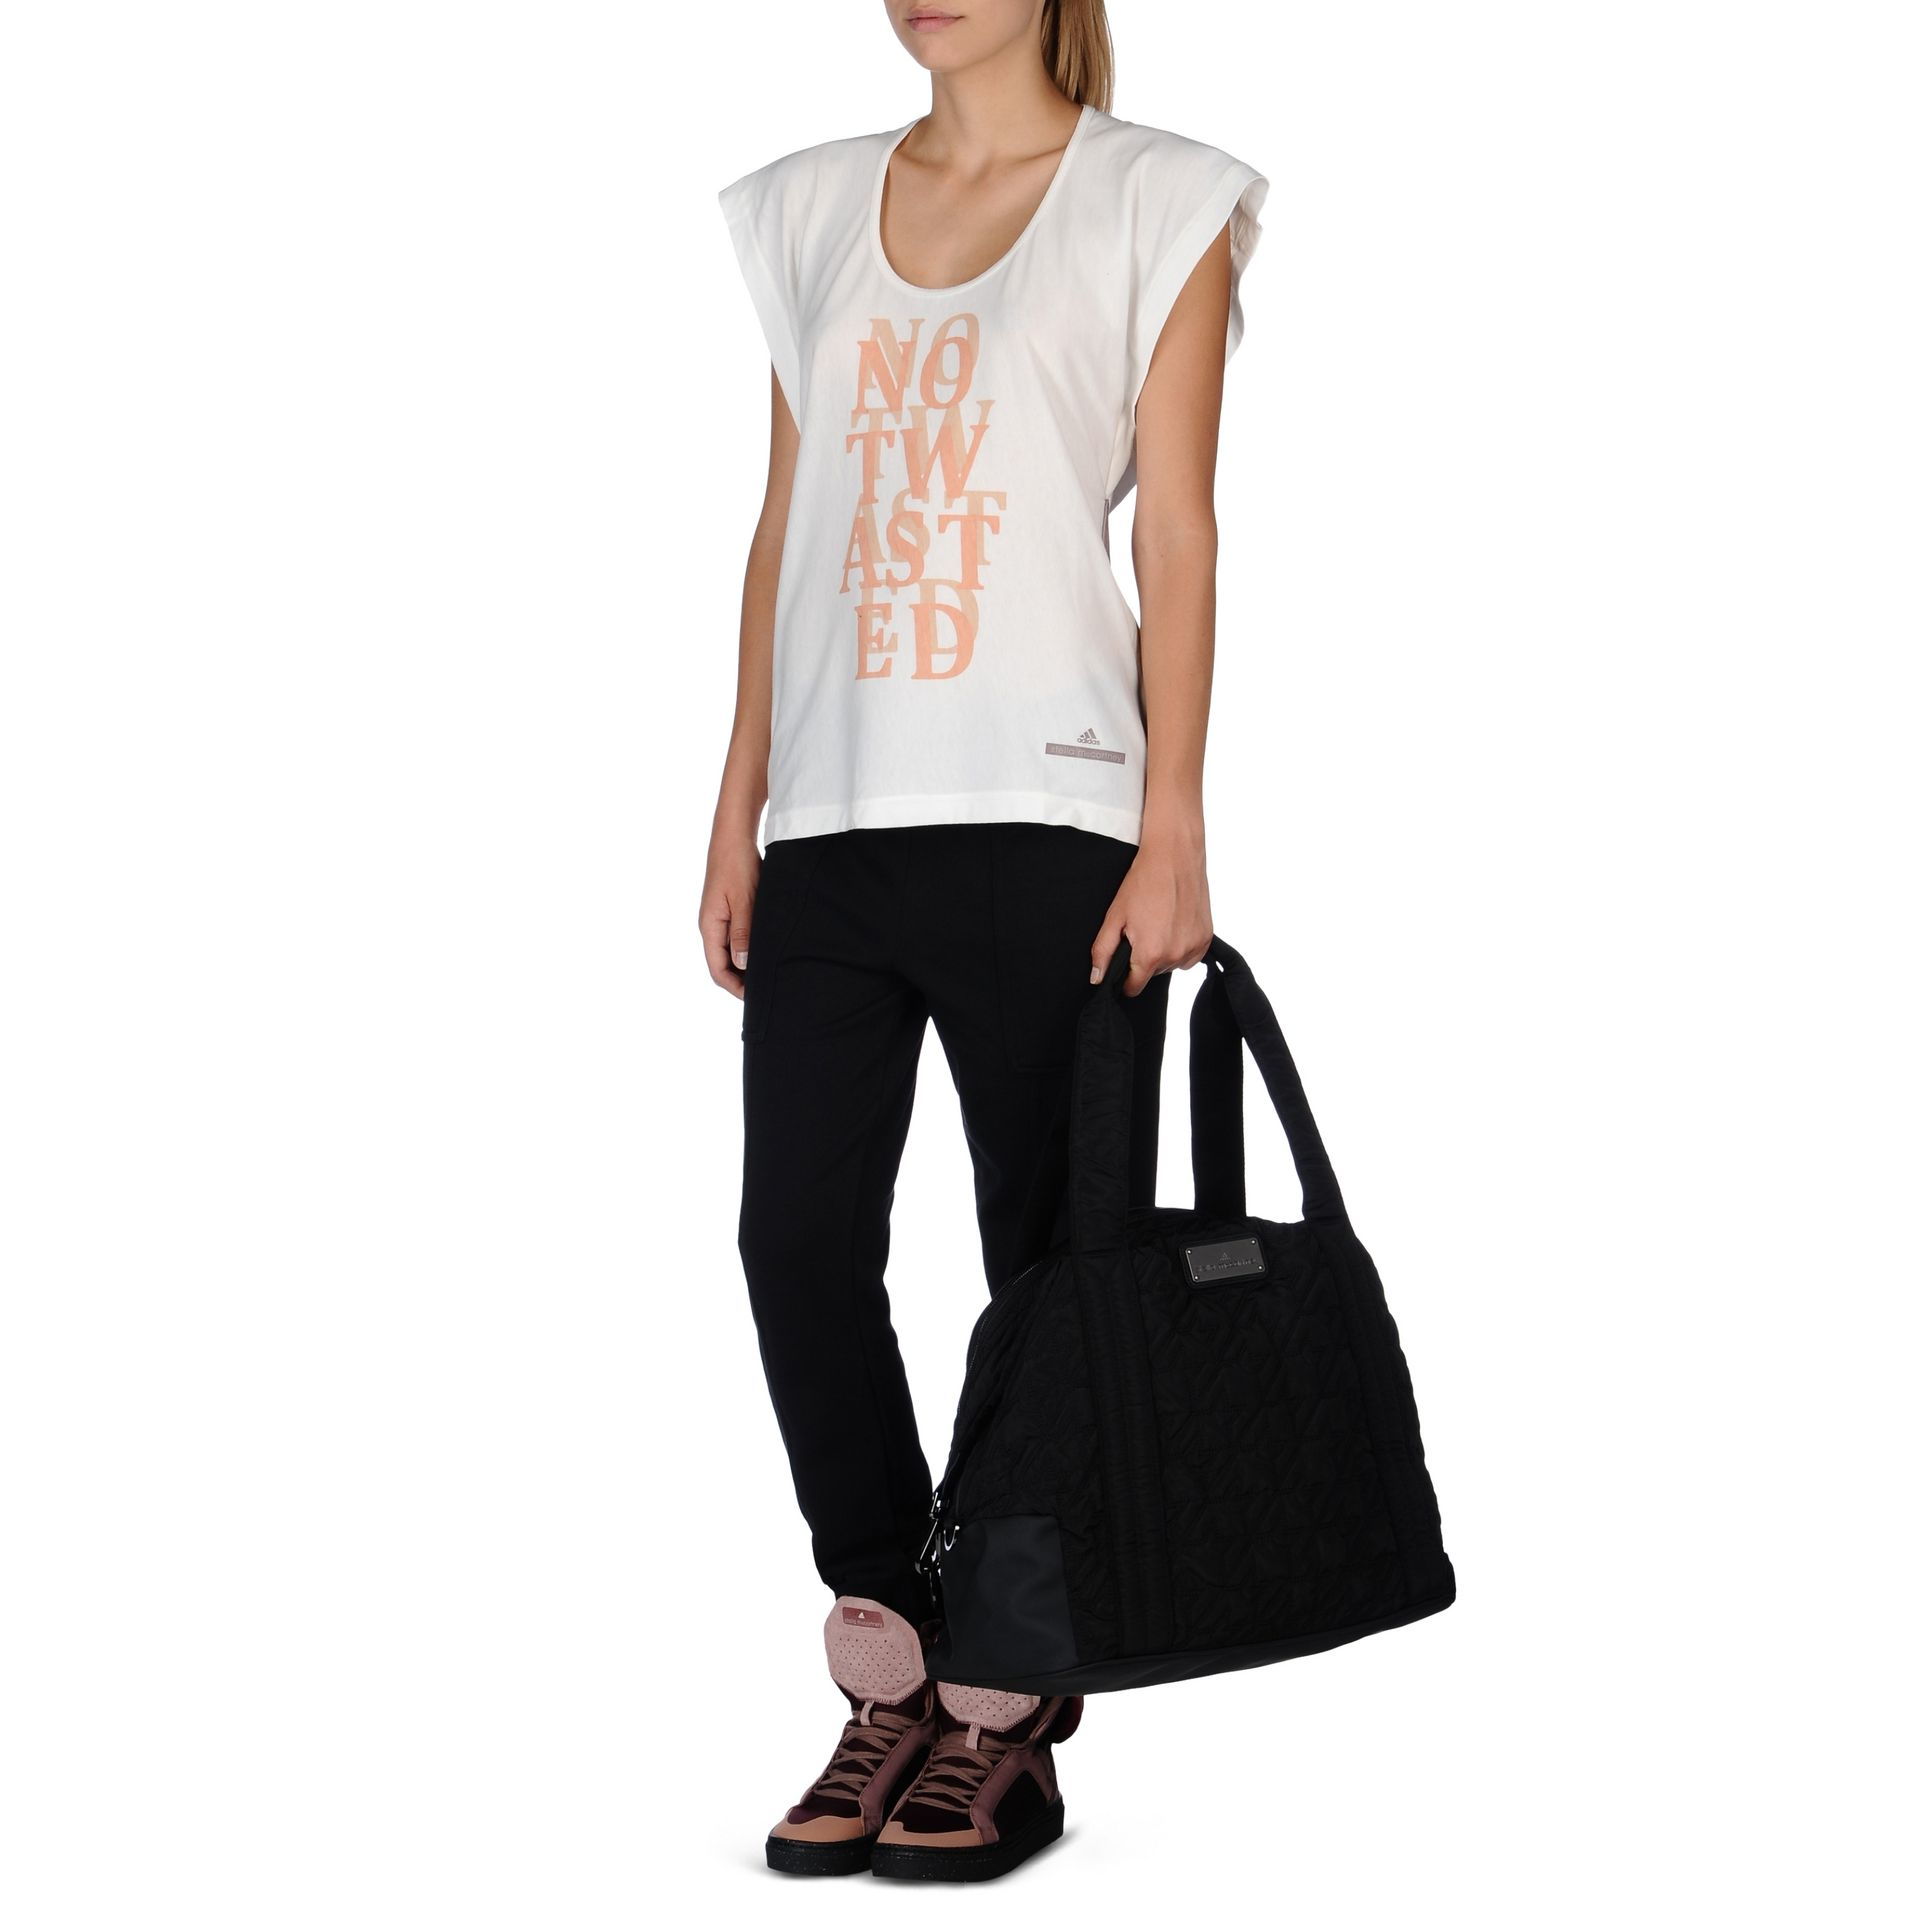 530ab65554 Lyst - adidas By Stella McCartney Low Waste Graphic T-shirt in White